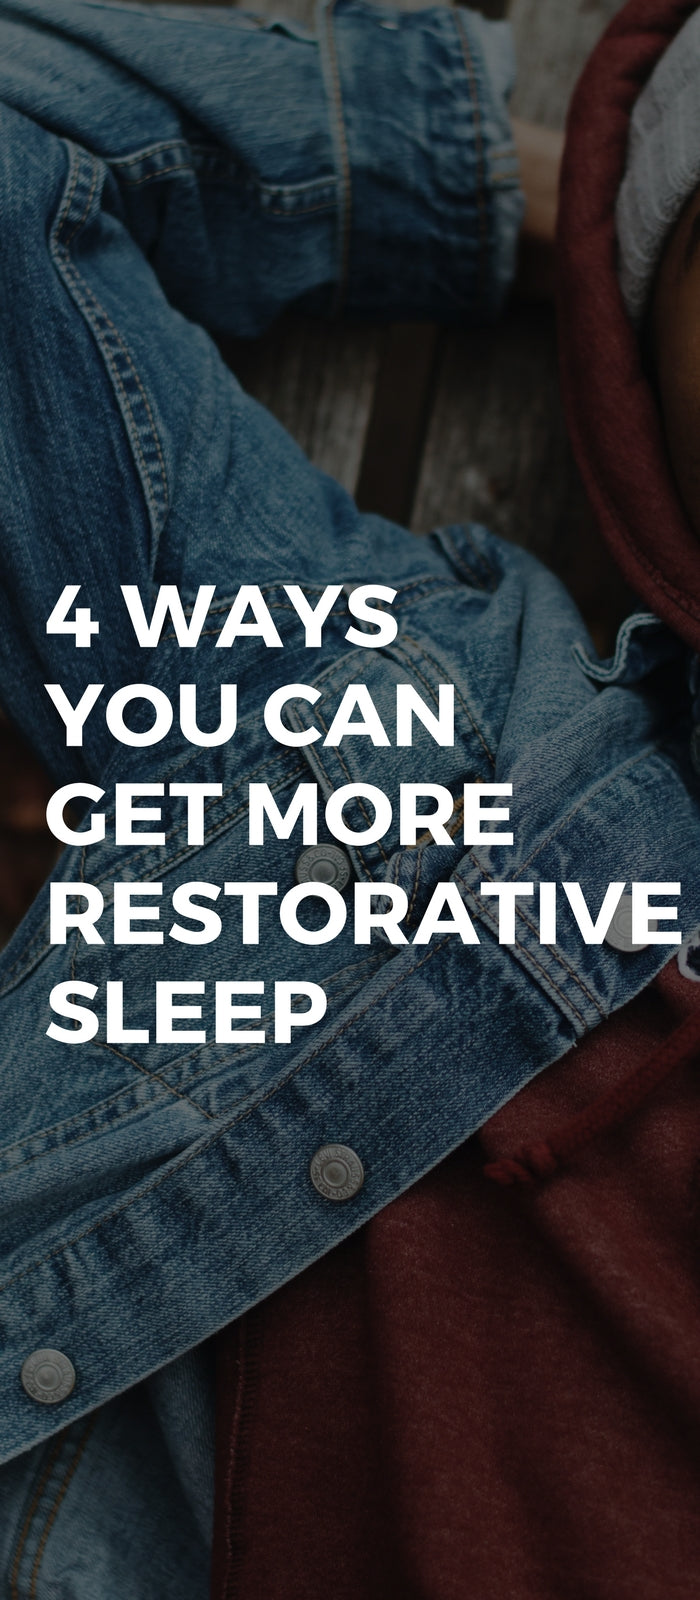 4 Ways You Can Get More Restorative Sleep